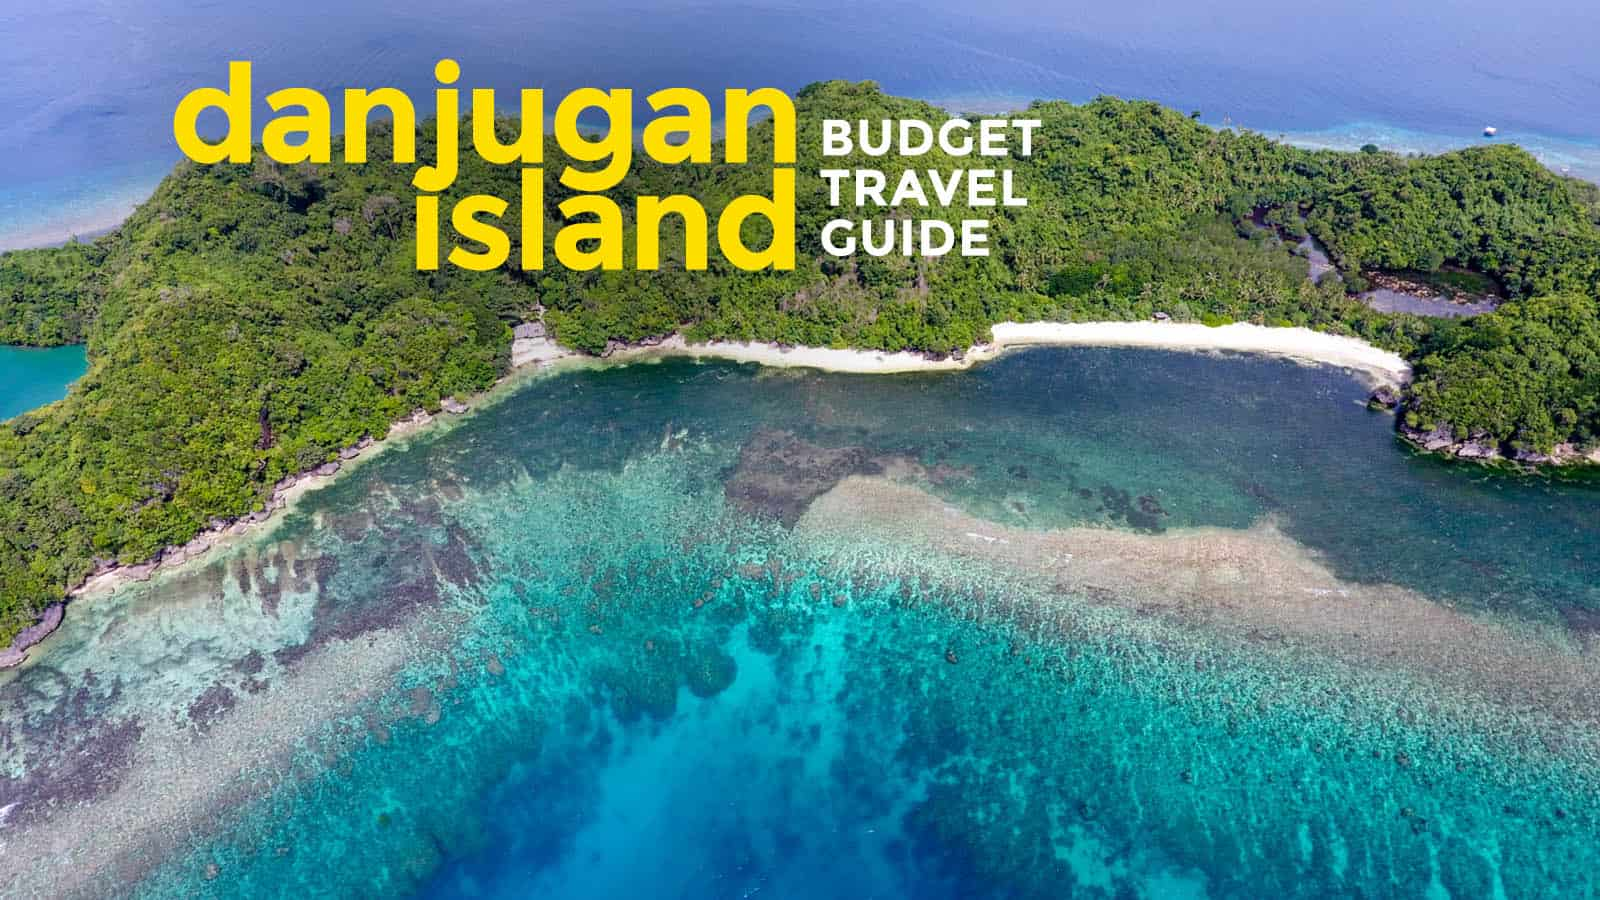 DANJUGAN ISLAND ON A BUDGET: Travel Guide & Itinerary